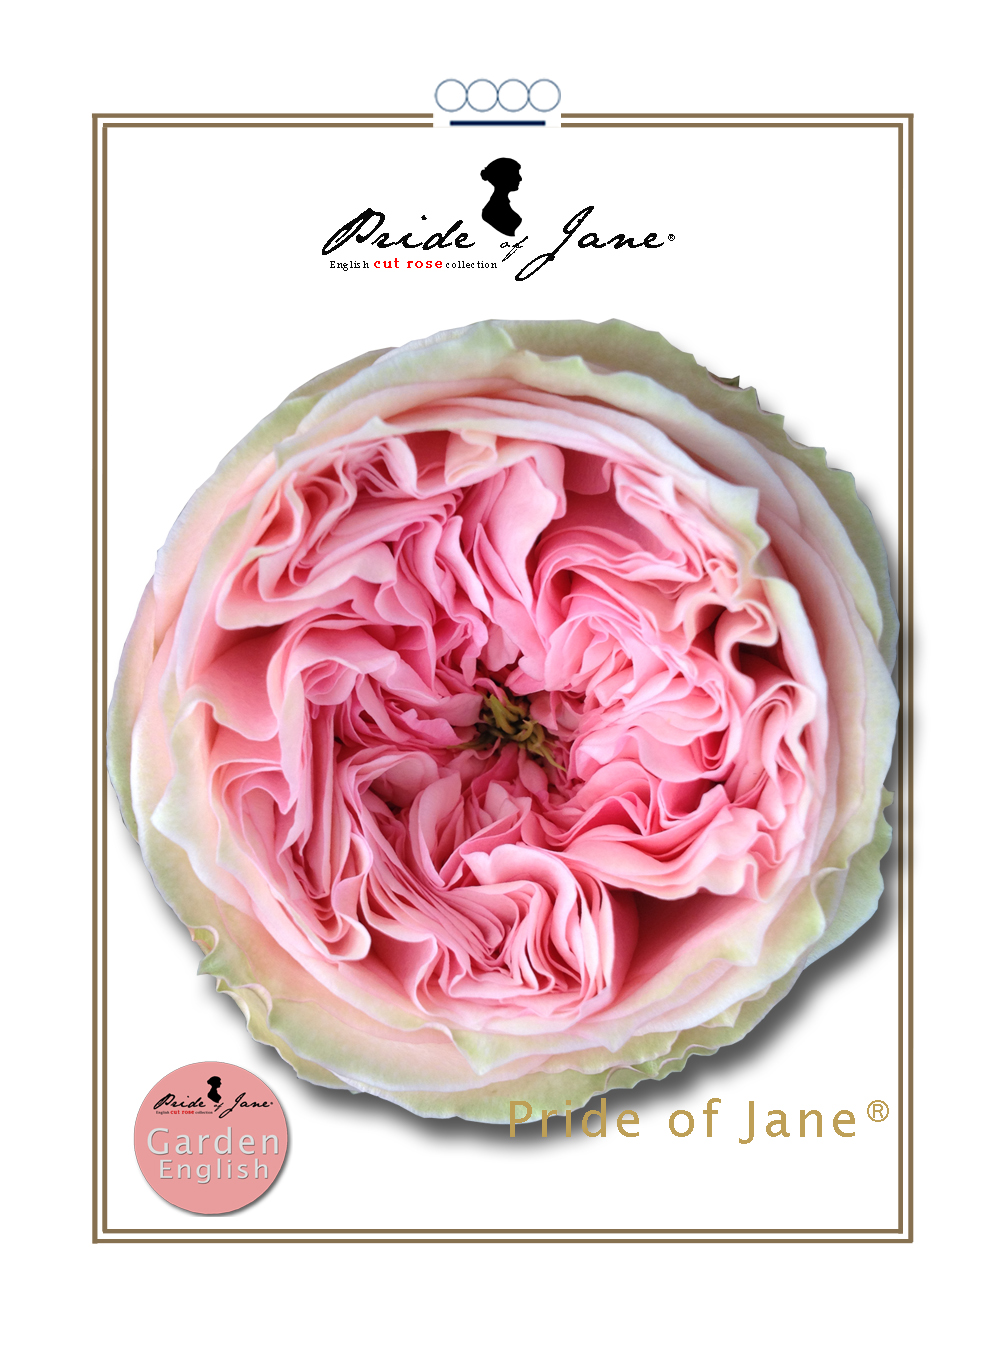 Pride of Jane®